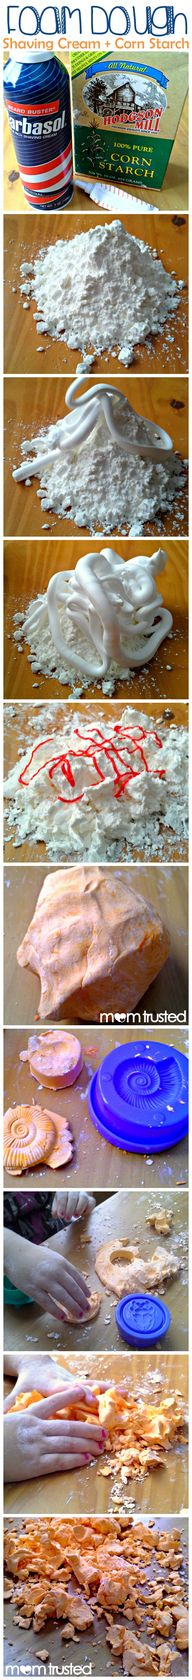 DIY Foam Dough!  Eas